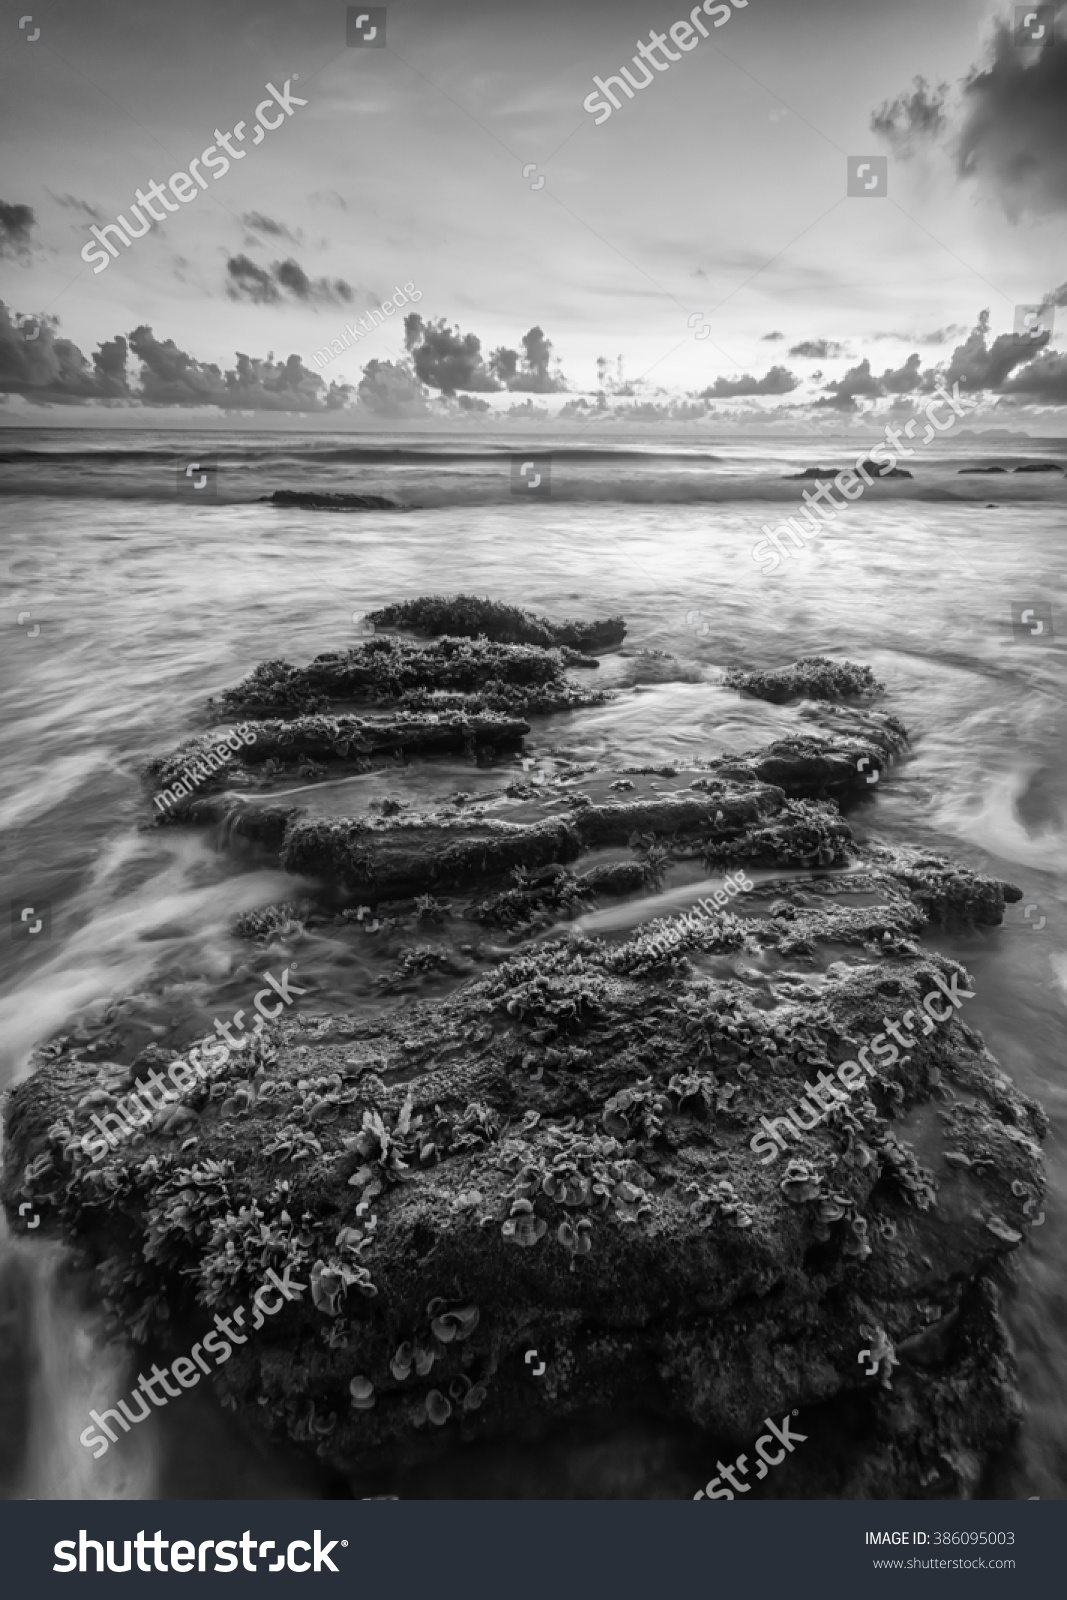 Beautiful scenery in rocky in black and white area taken with slow shutter soft focus